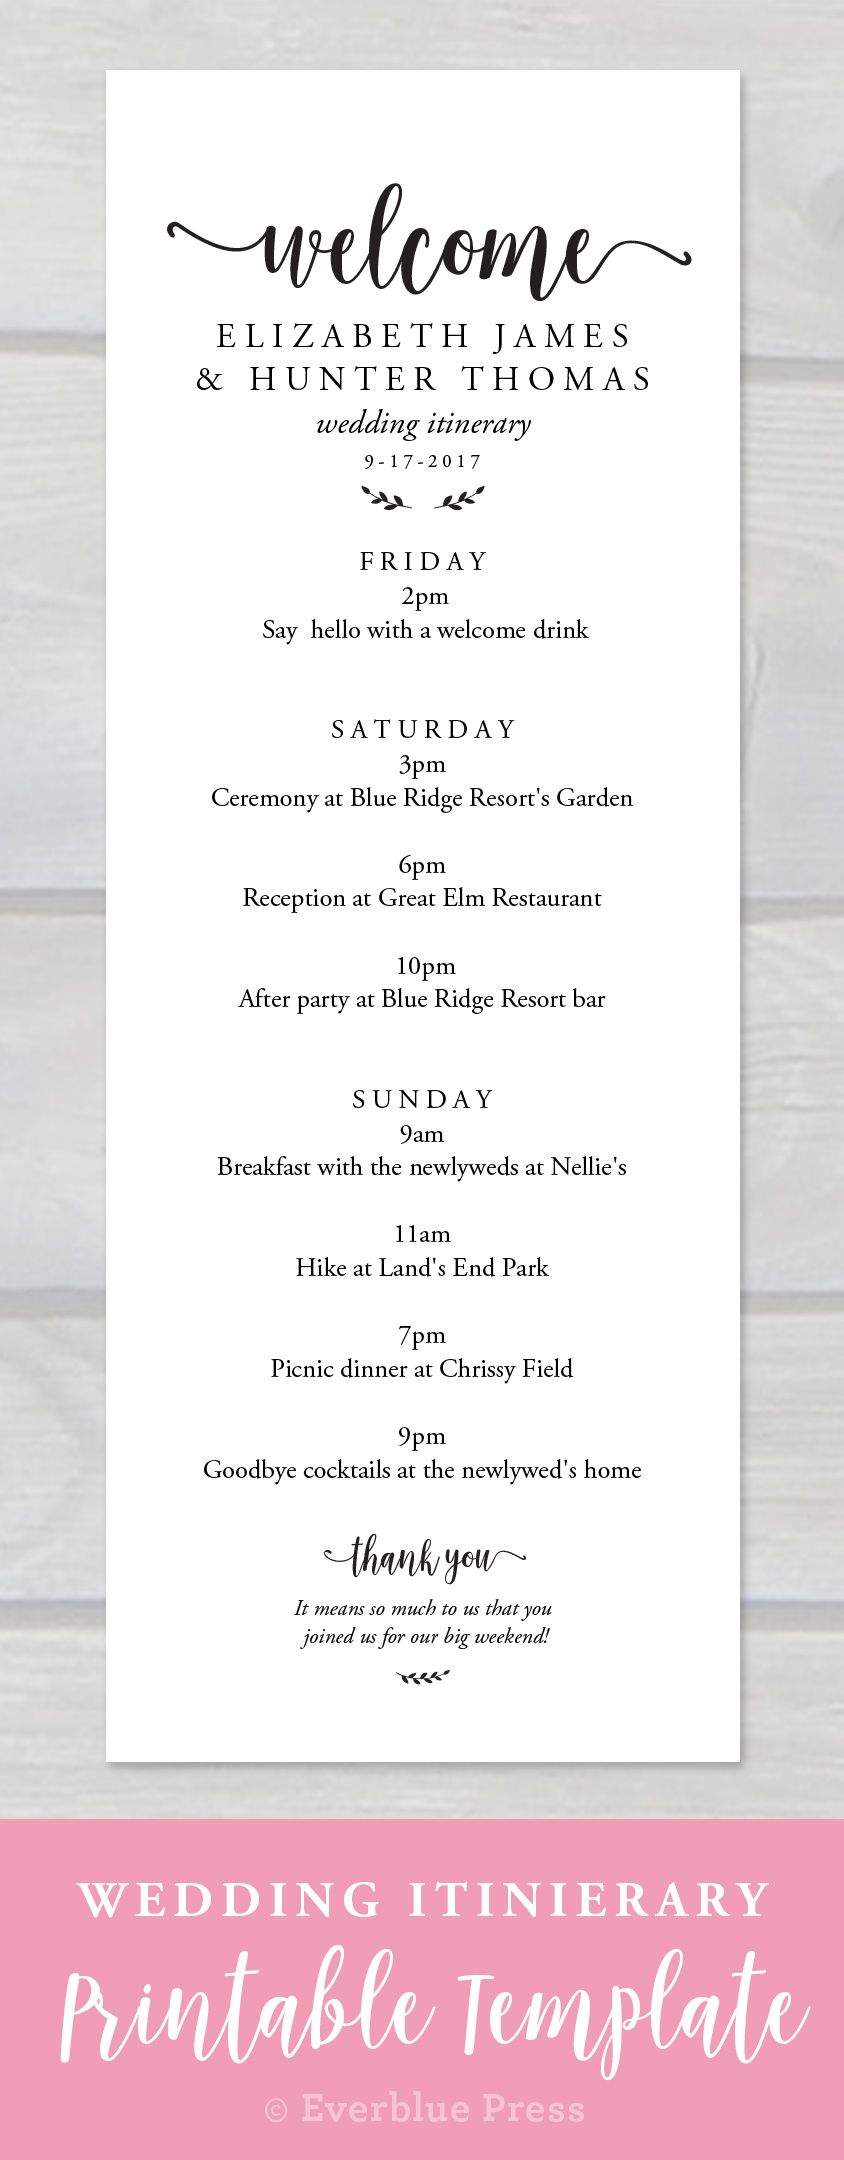 Everblue Presss Wedding Welcome Weekend Itinerary Template Allows